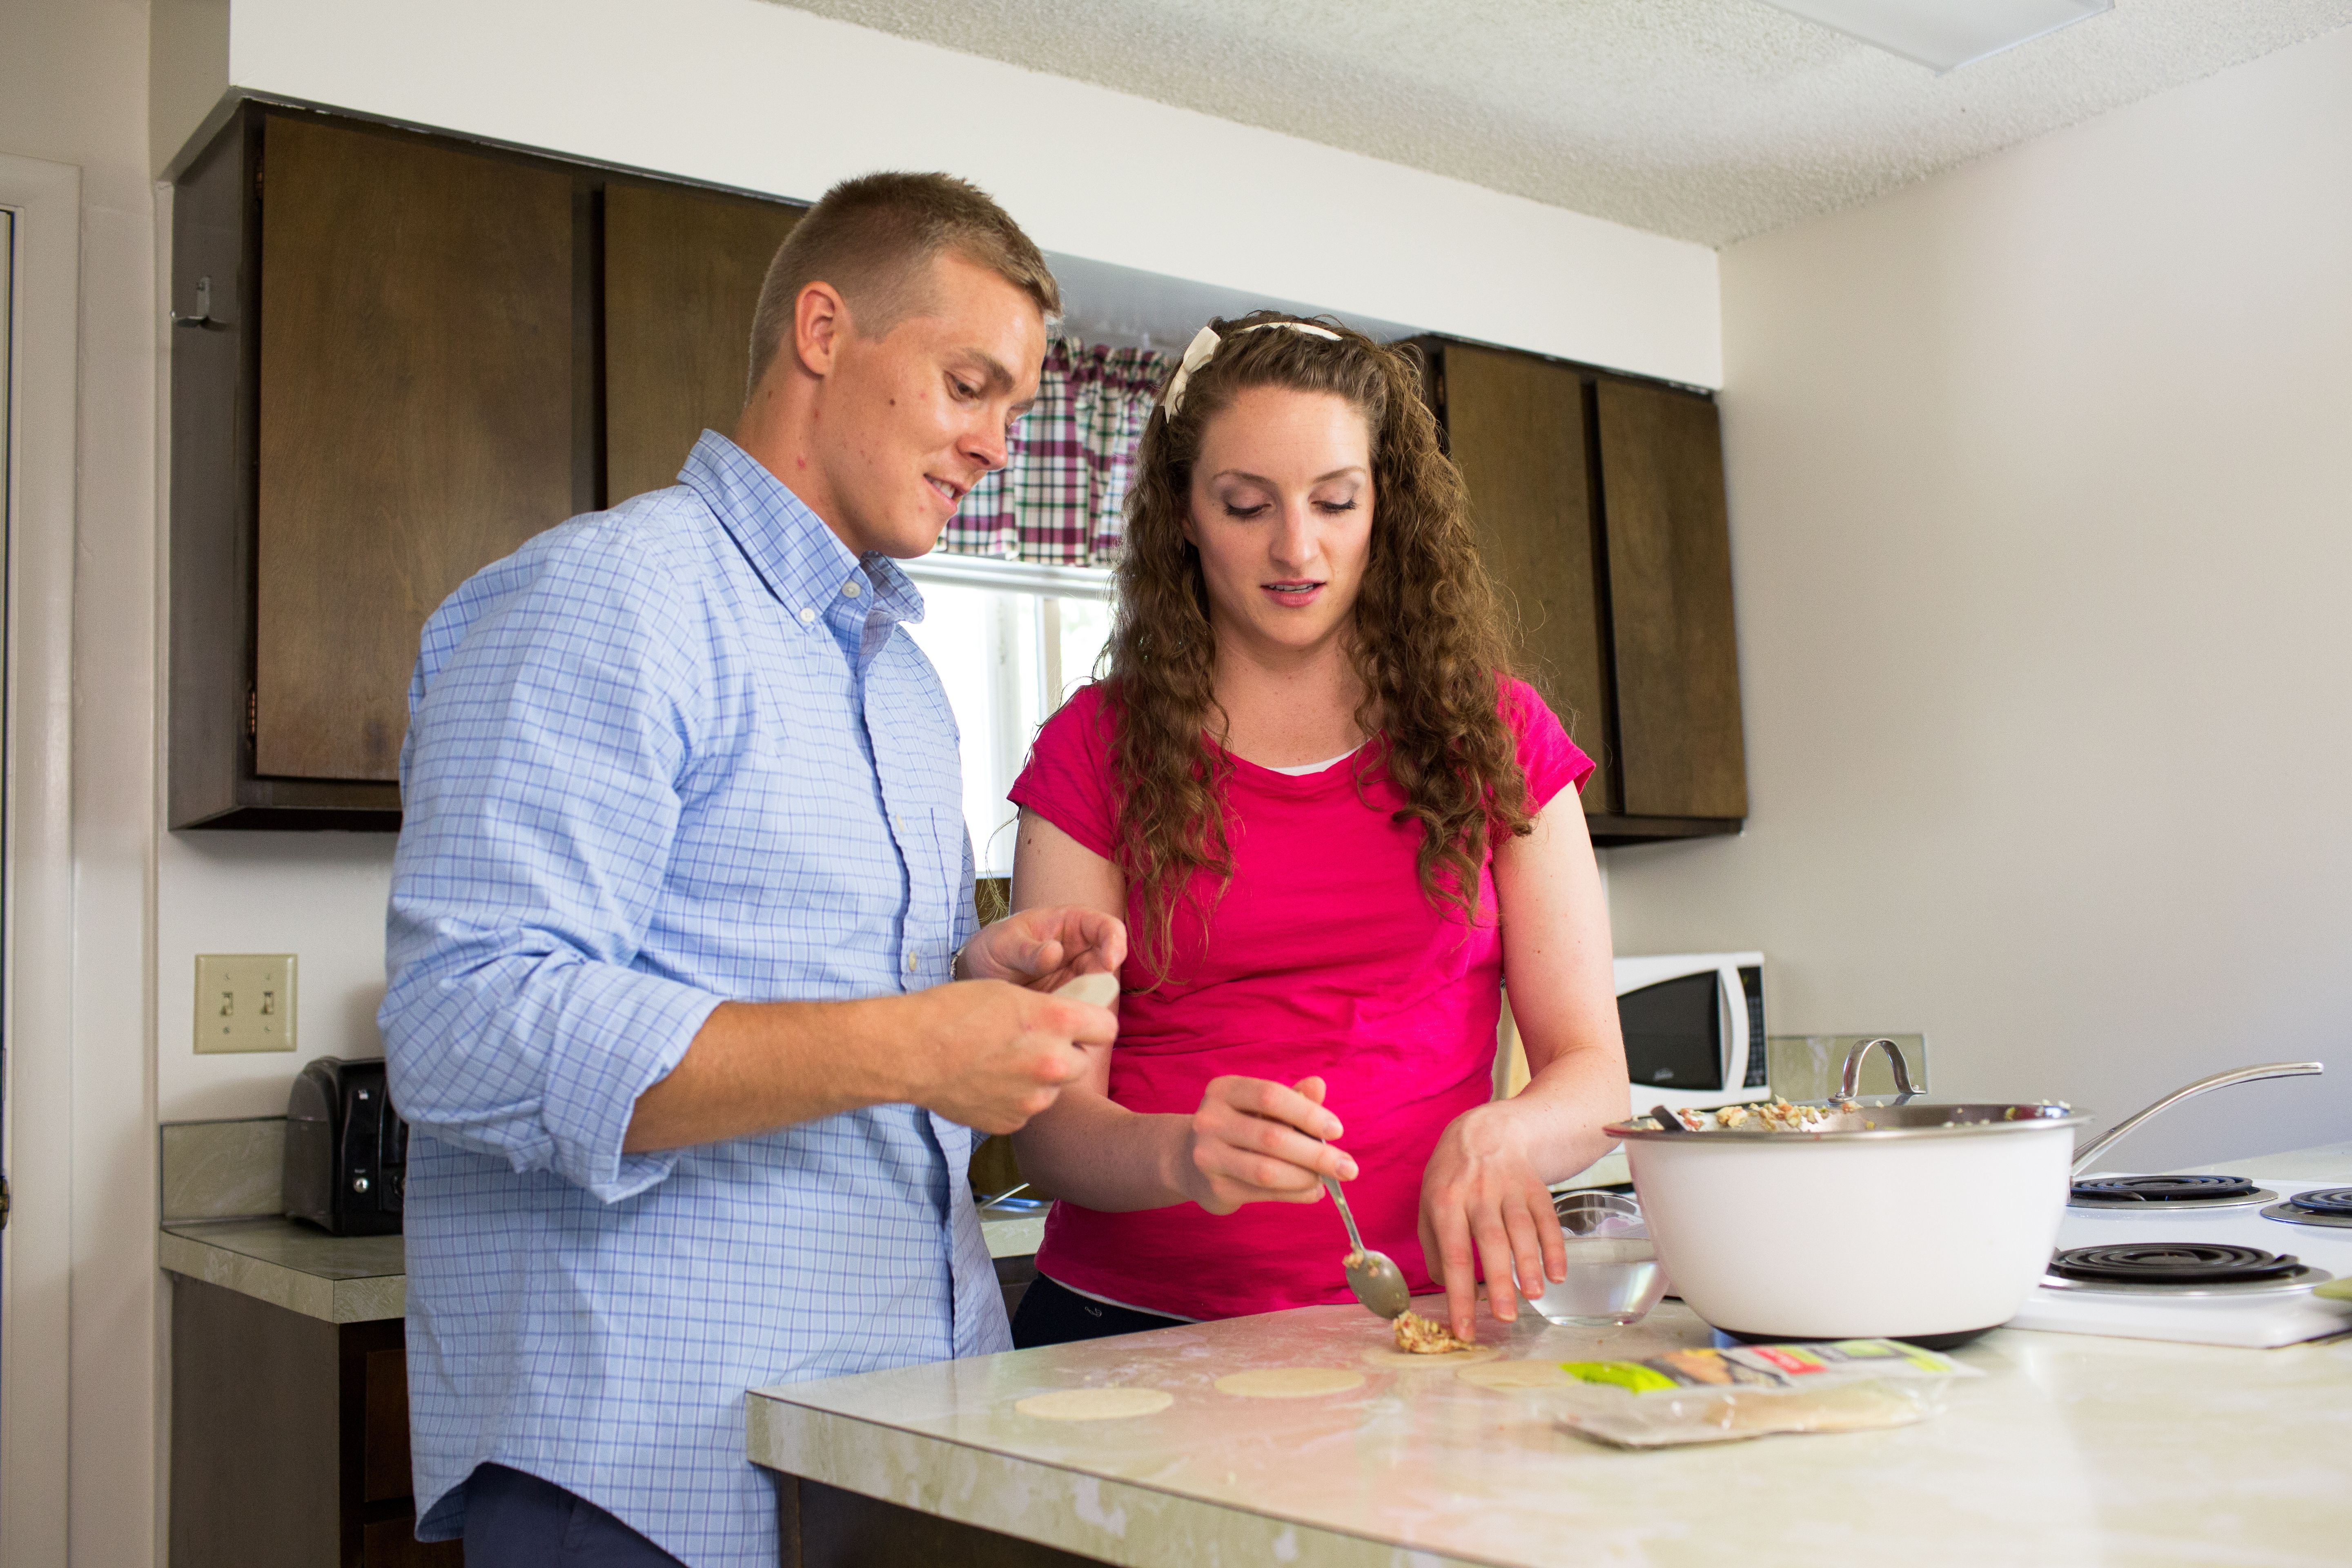 A couple preparing food together in the kitchen.